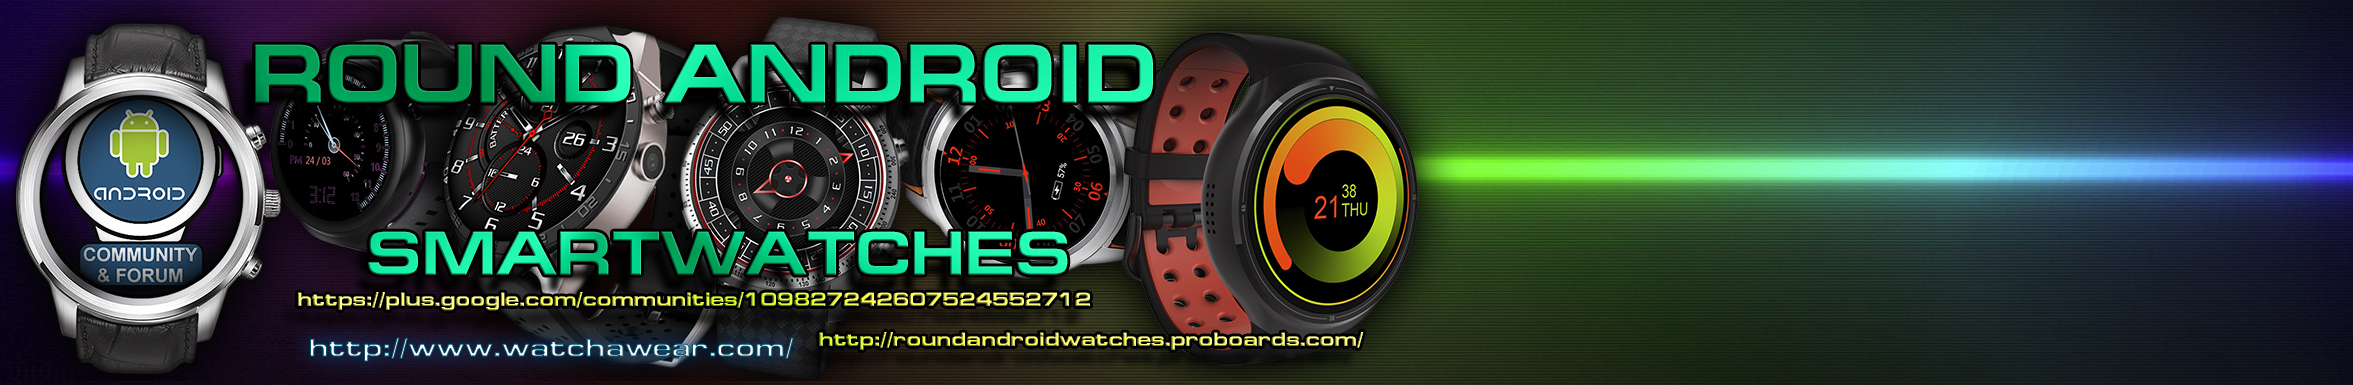 Round Android Smartwatches